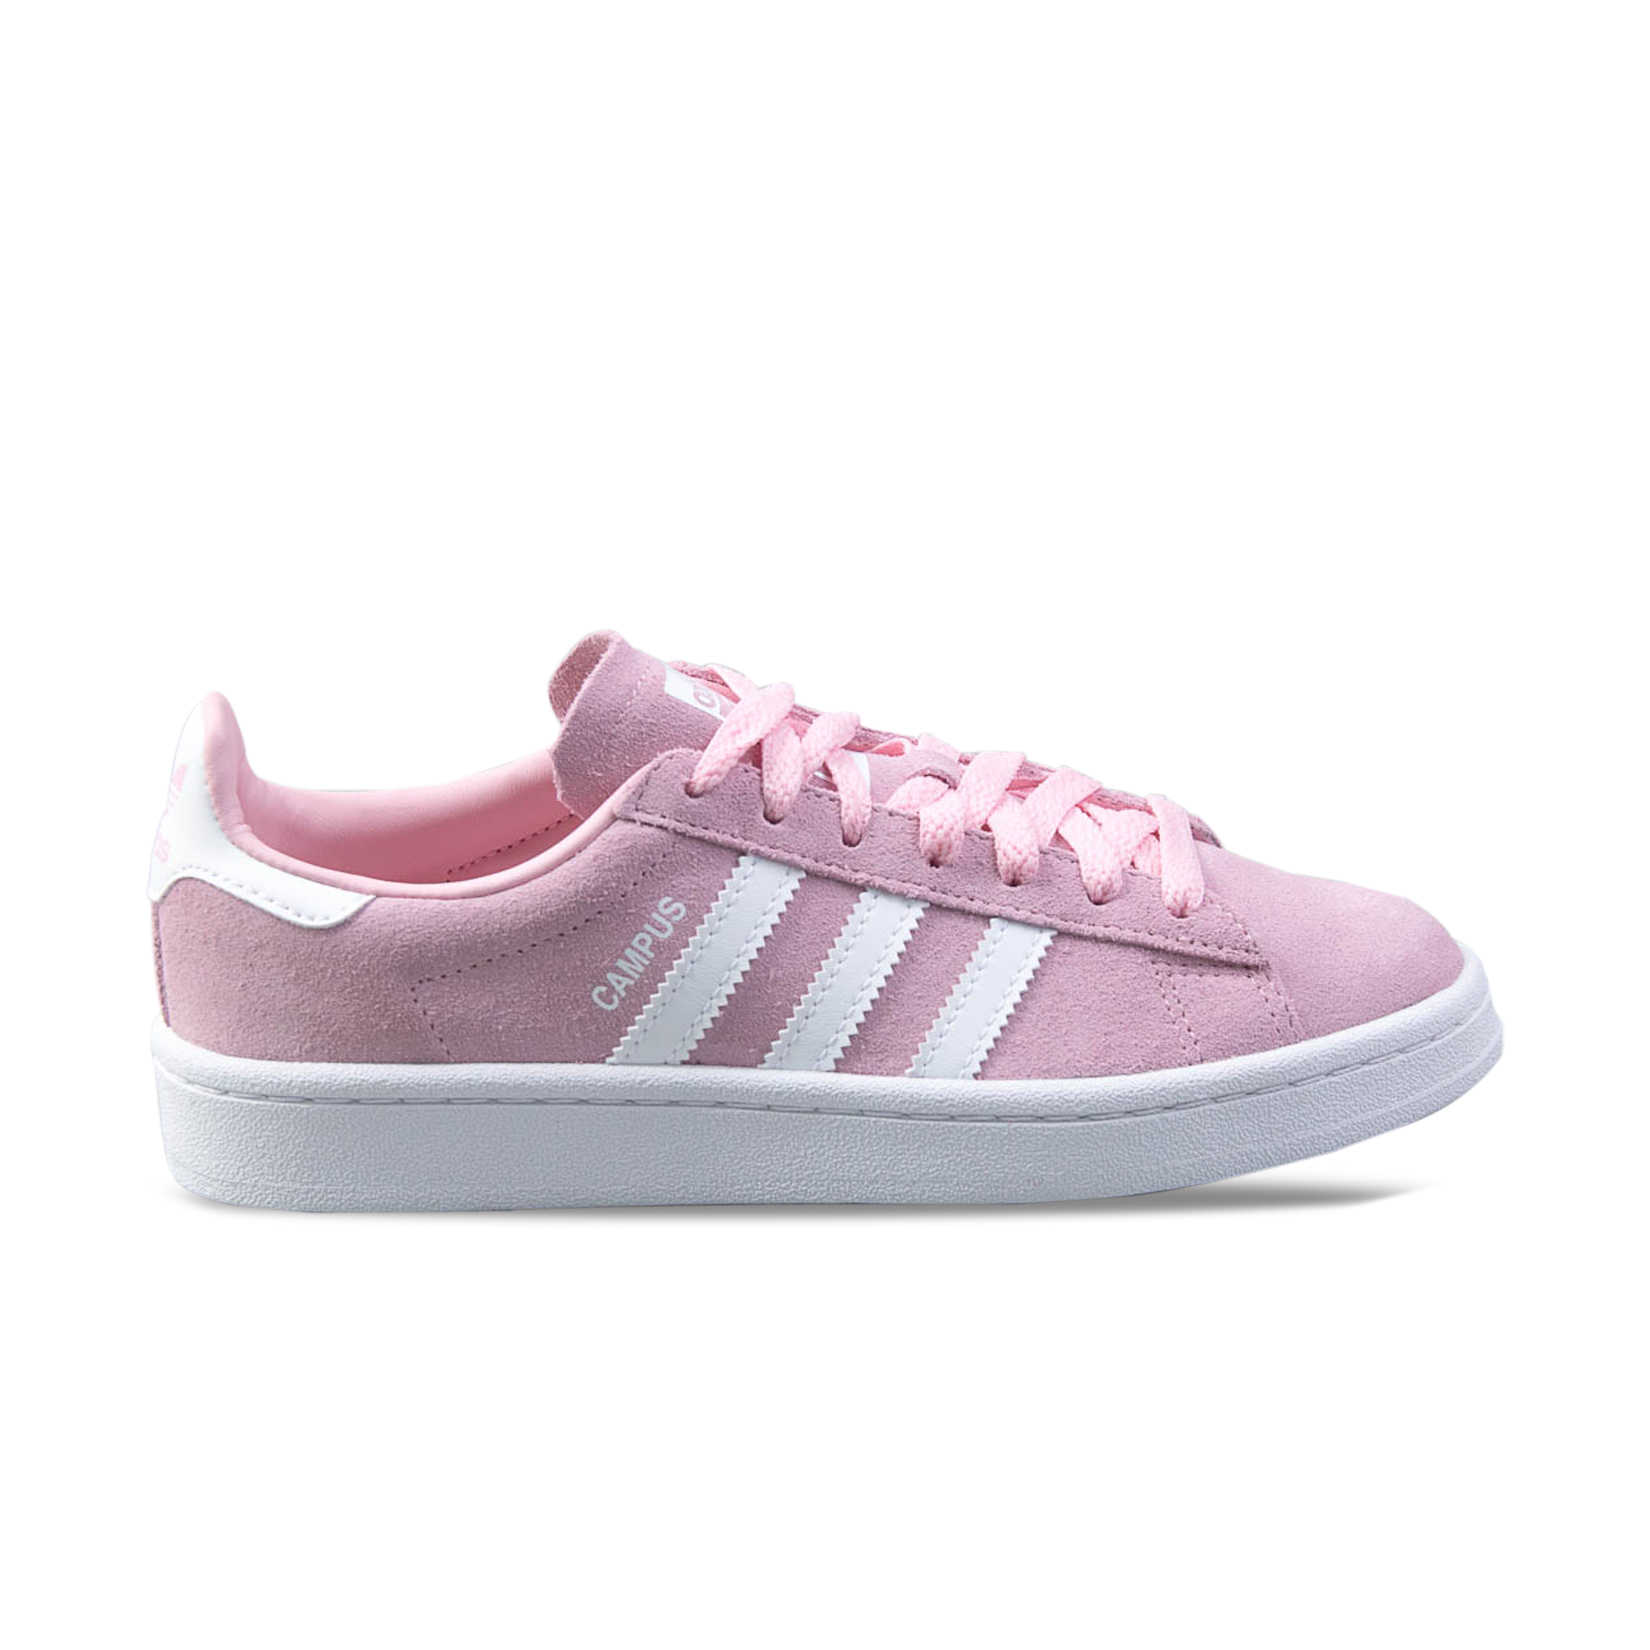 Adidas Originals Campus Pink - White